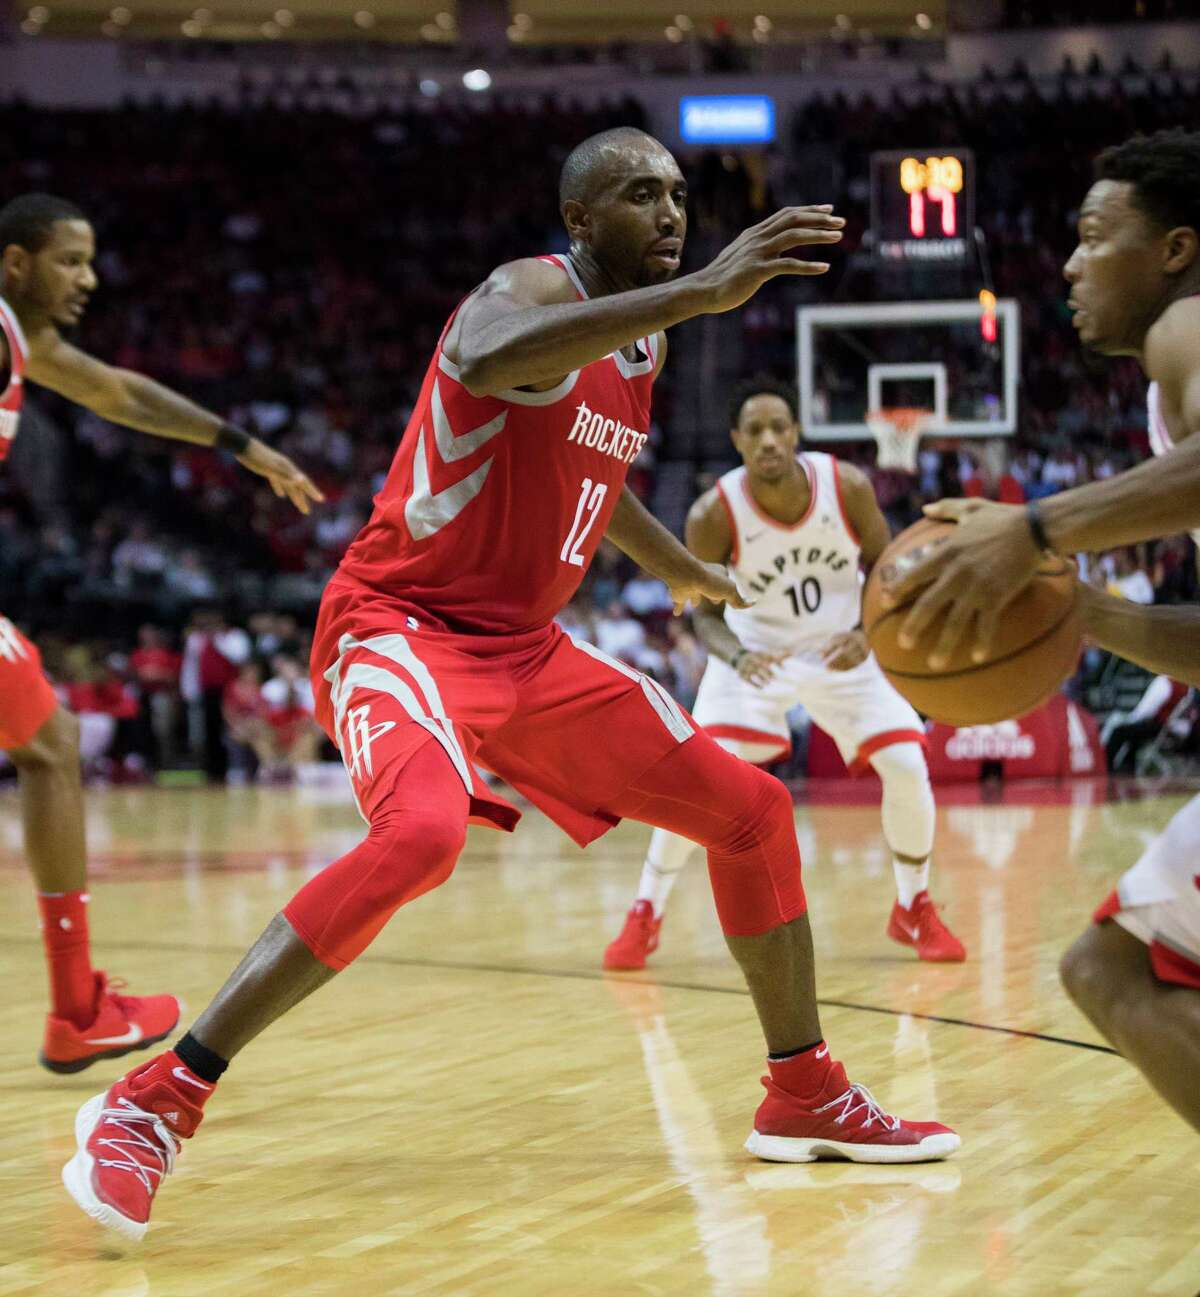 Houston Rockets forward Luc Mbah a Moute (12) put pressure on Toronto Raptors guard Kyle Lowry (7) during the second half of the game, Tuesday, Nov. 14, 2017, in Houston. The Toronto Raptors won 129-113.